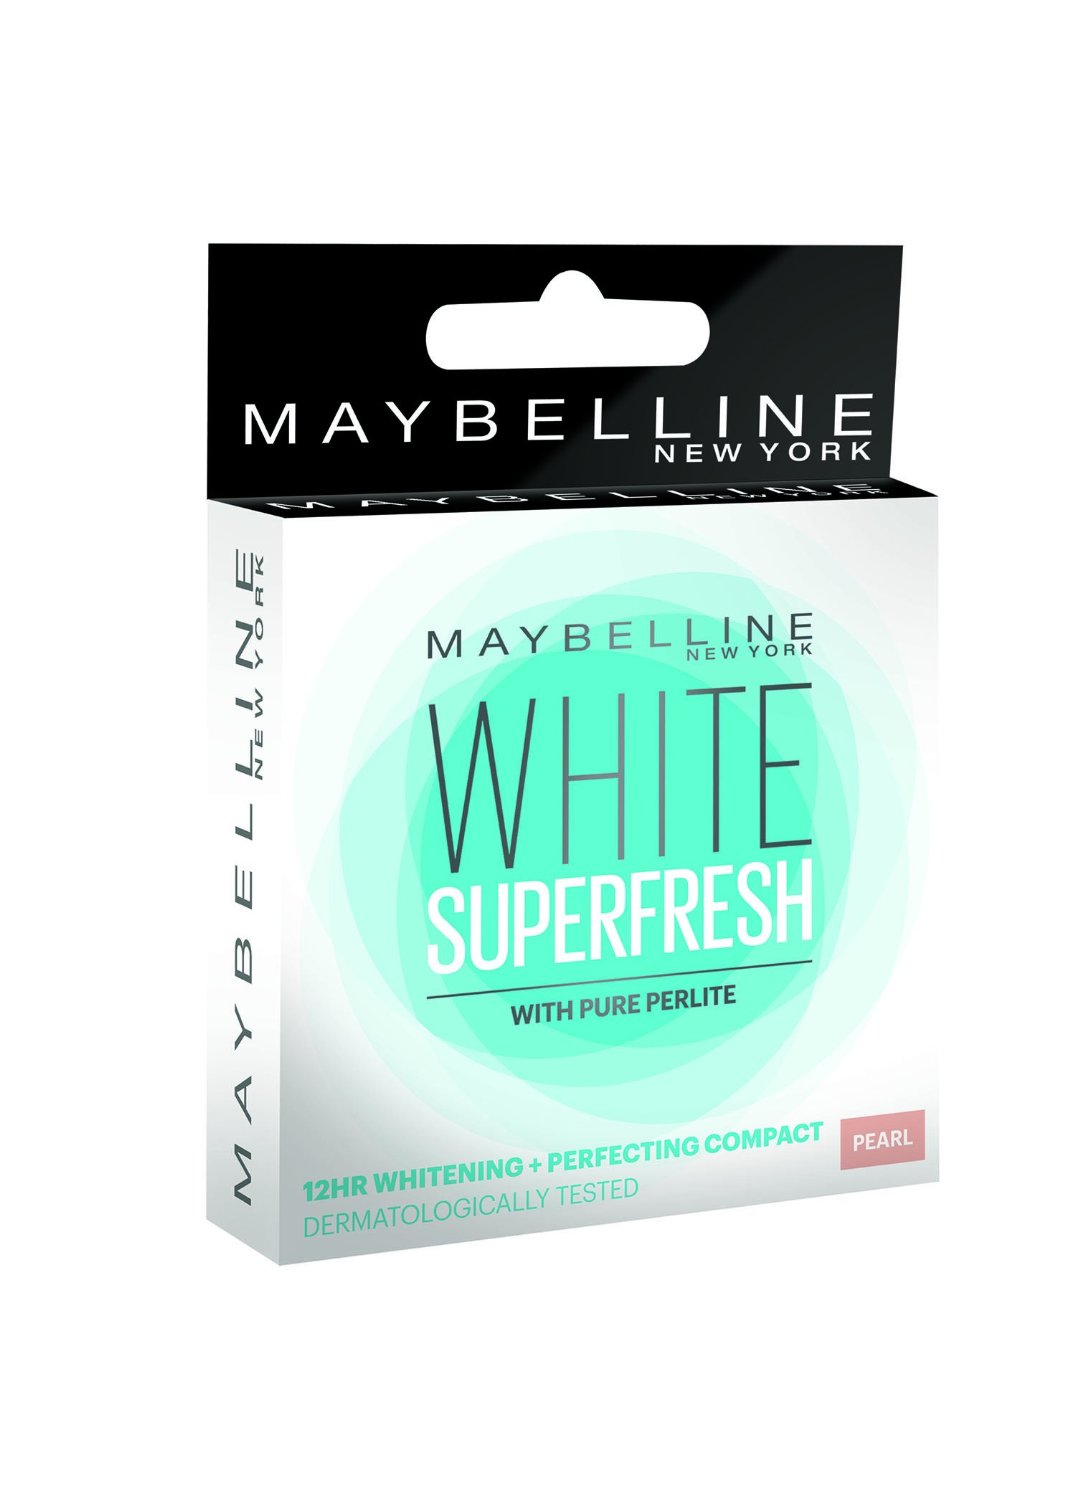 Maybelline New York White Super Fresh Compact Image